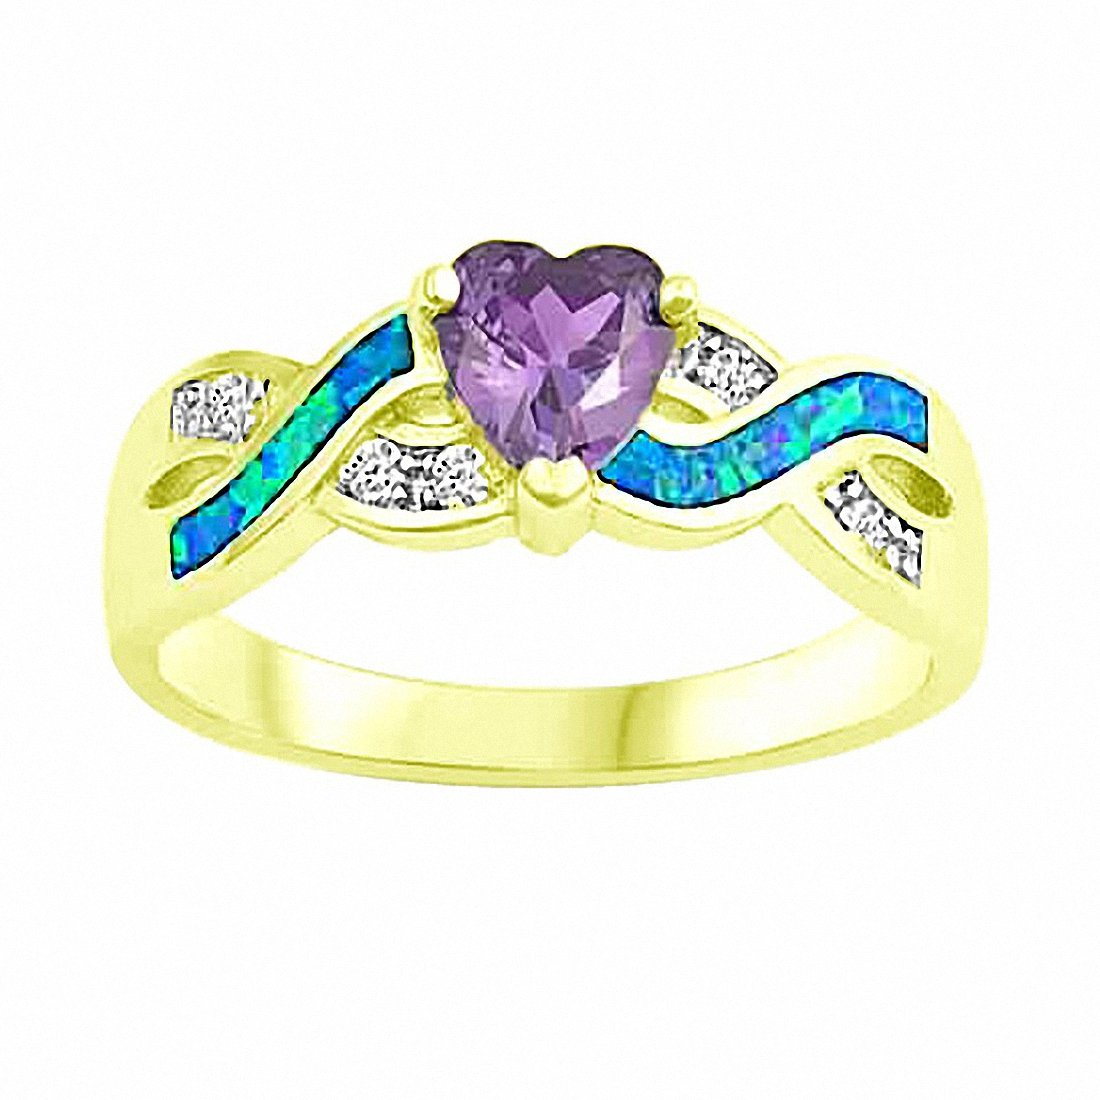 Heart Infinity Promise Ring Created Opal Simulated Amethyst 925 Sterling Silver Choose Color